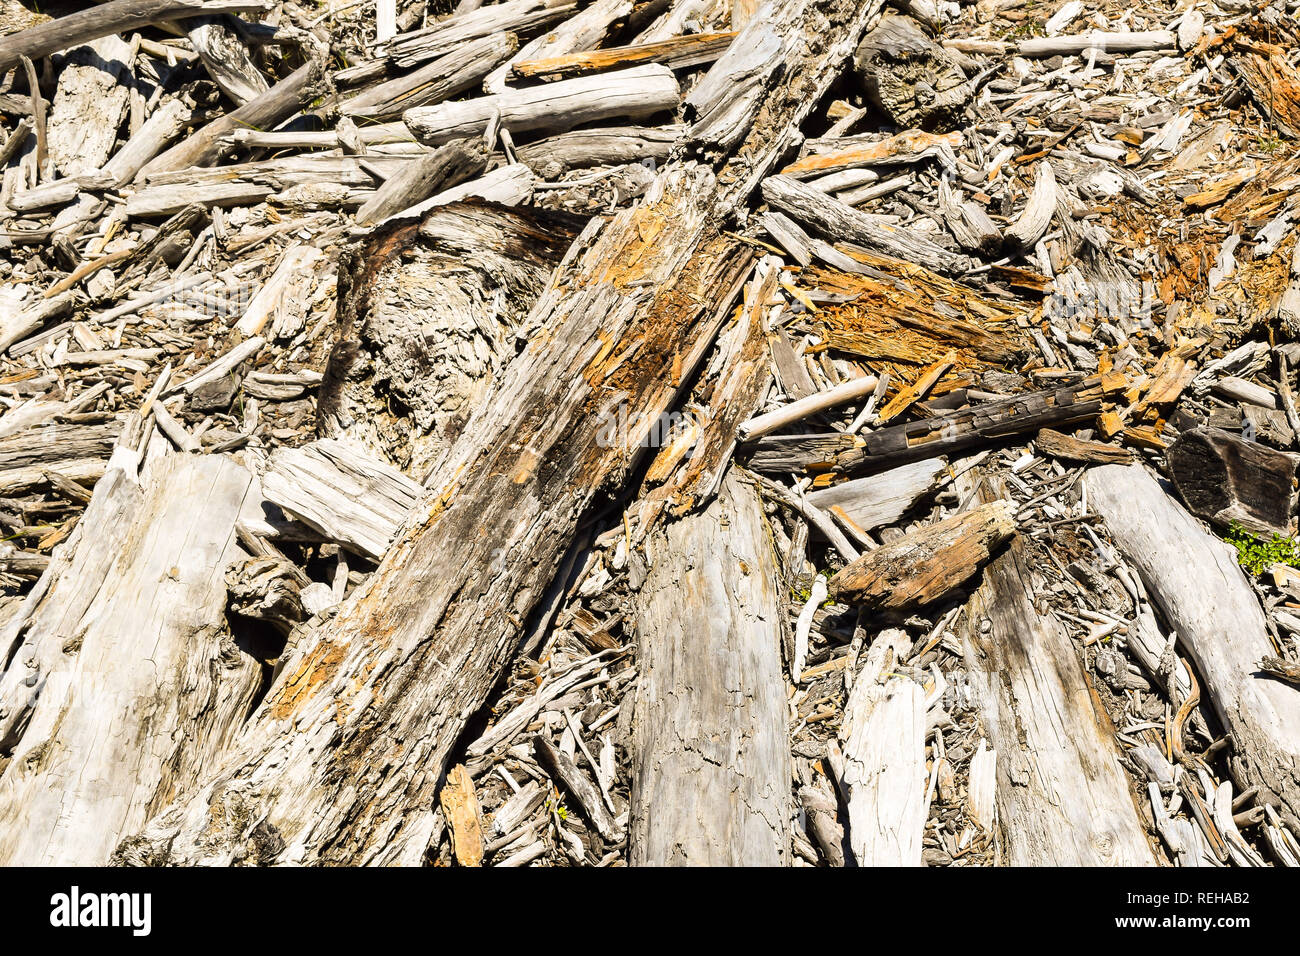 Driftwood covers the sandy shore in Tolaga Bay, New Zealand - Stock Image